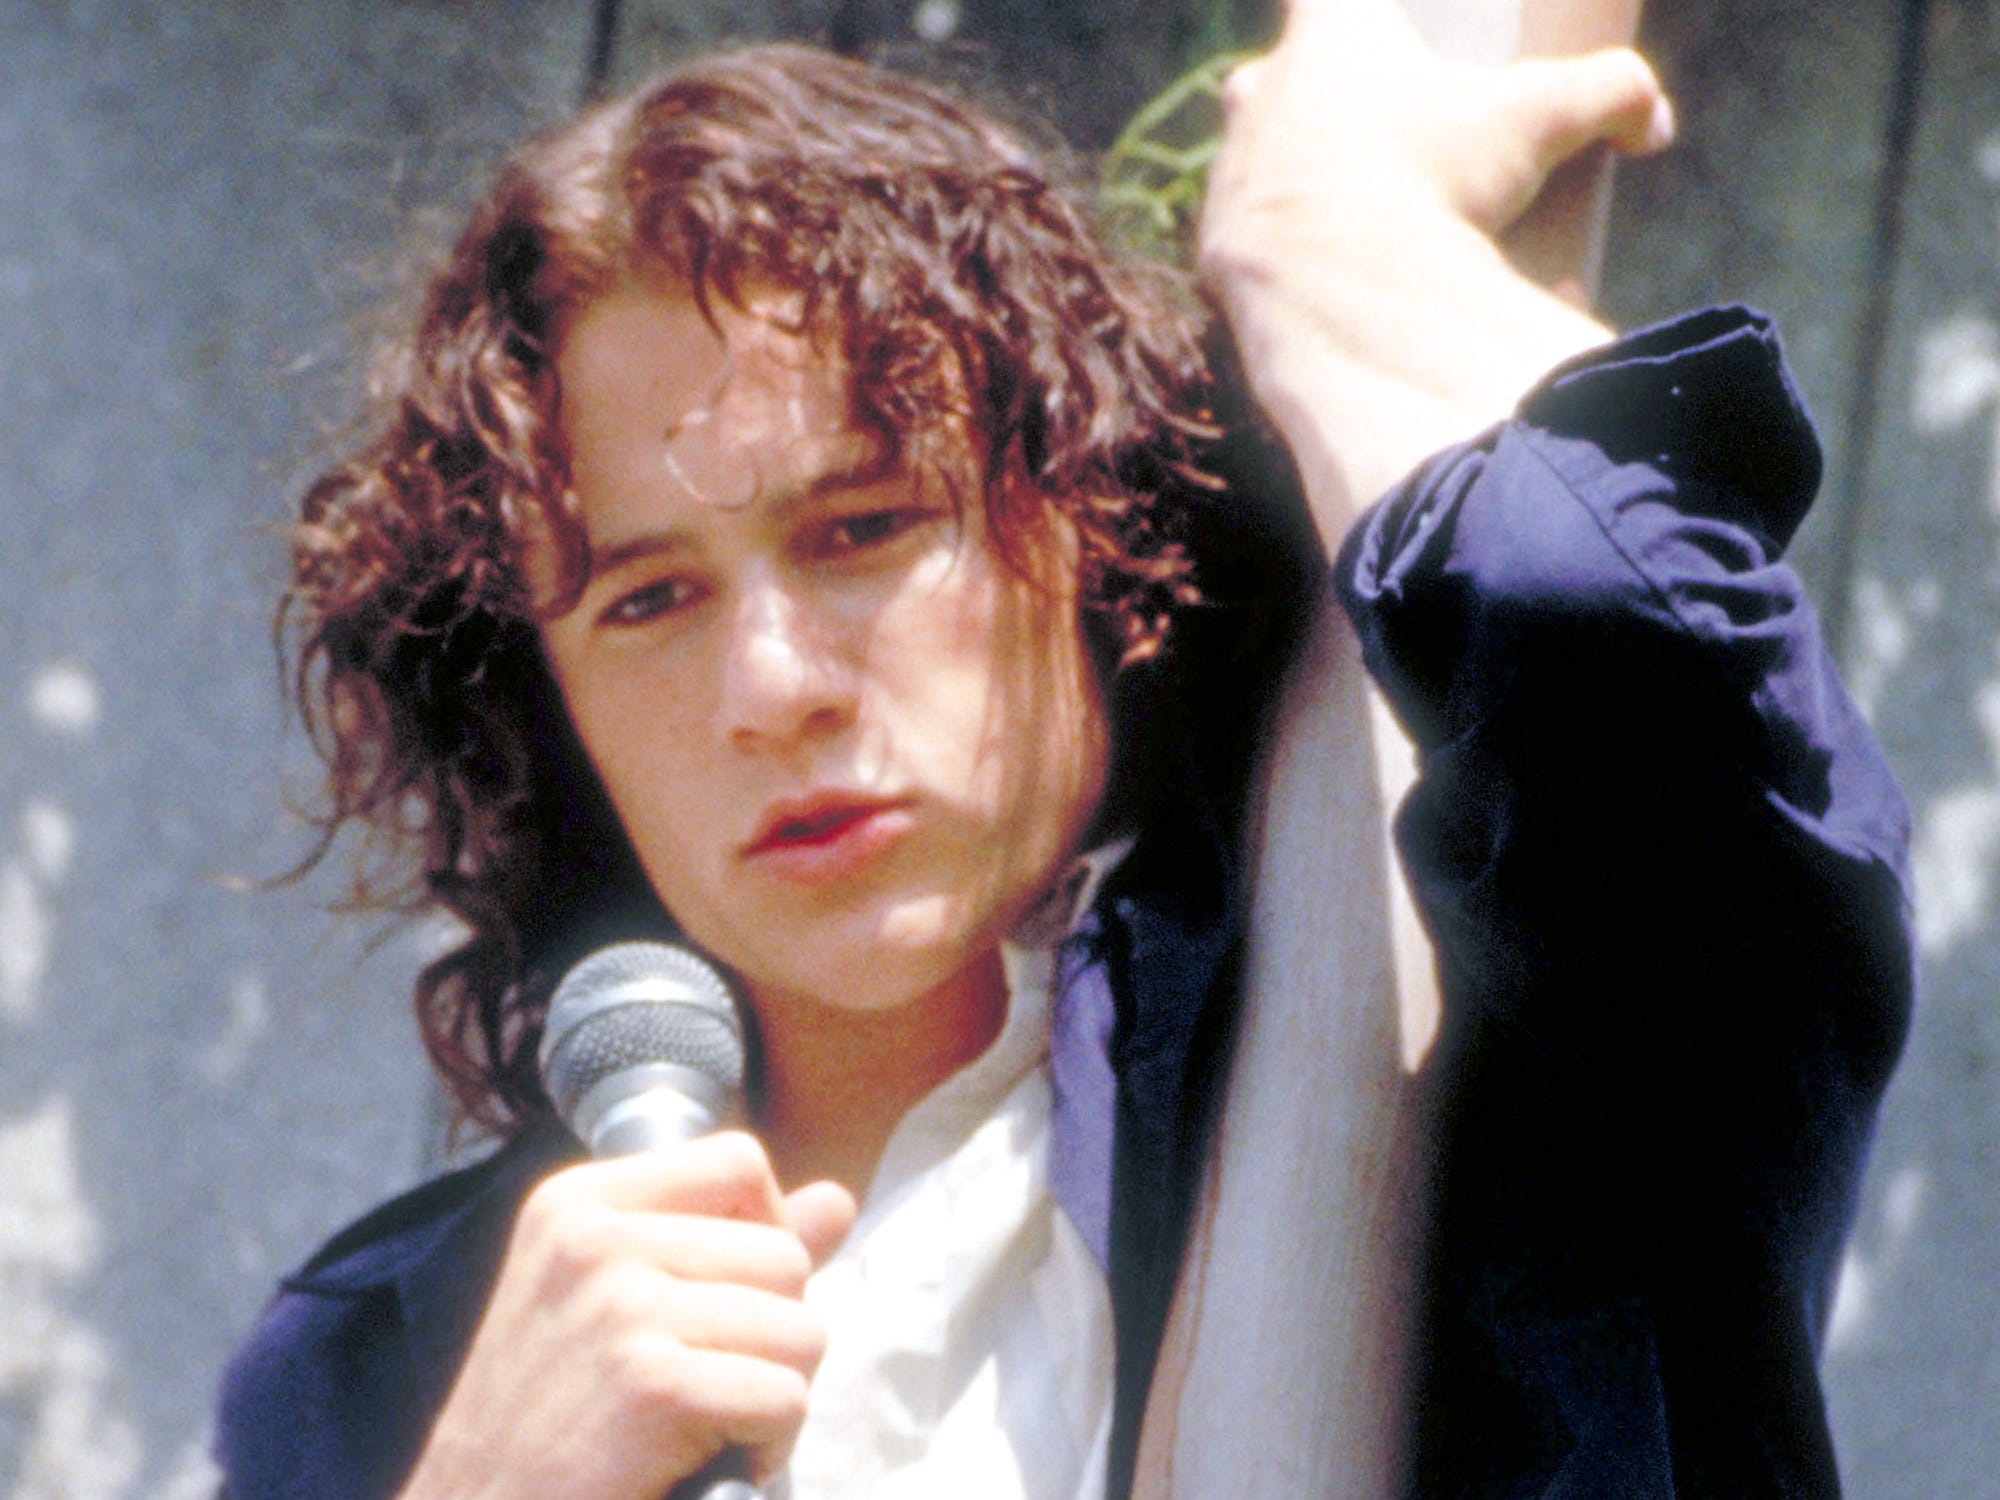 10 Things I Hate About You Dance Scene Explained